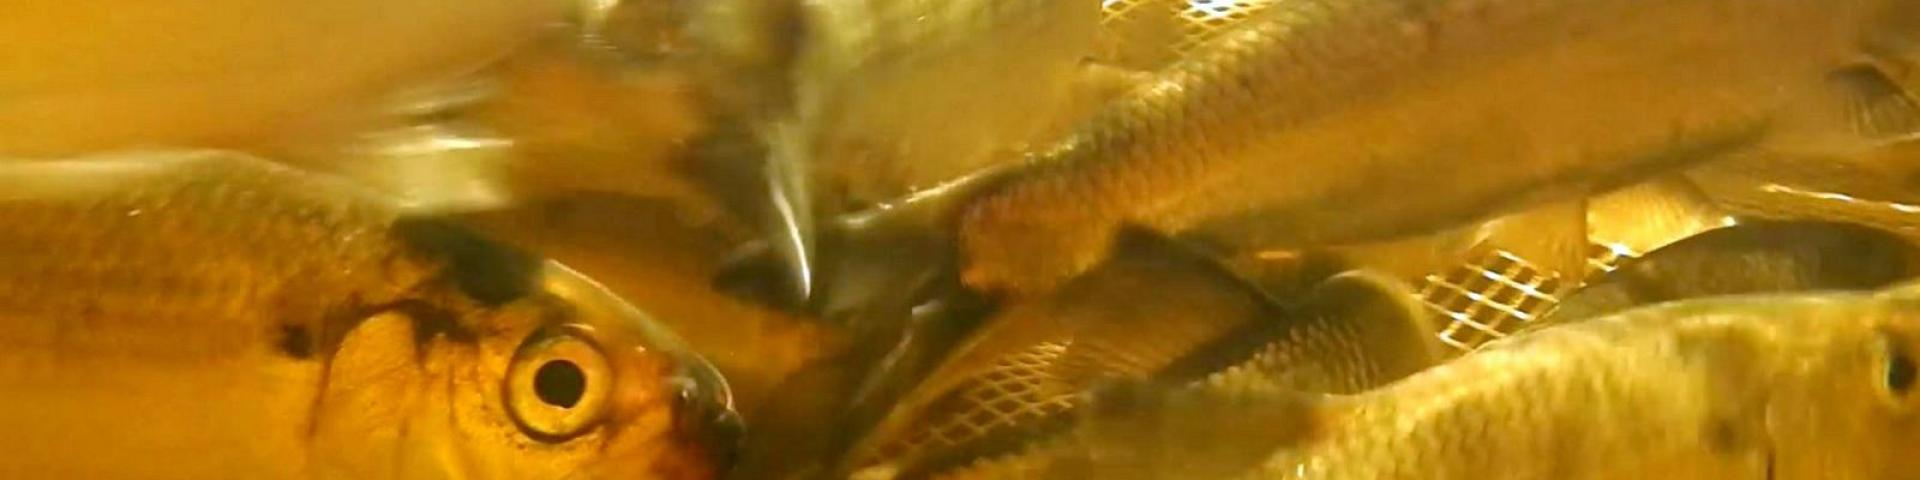 Water Matters - Inside an alewives swim trap on the St. Croix River